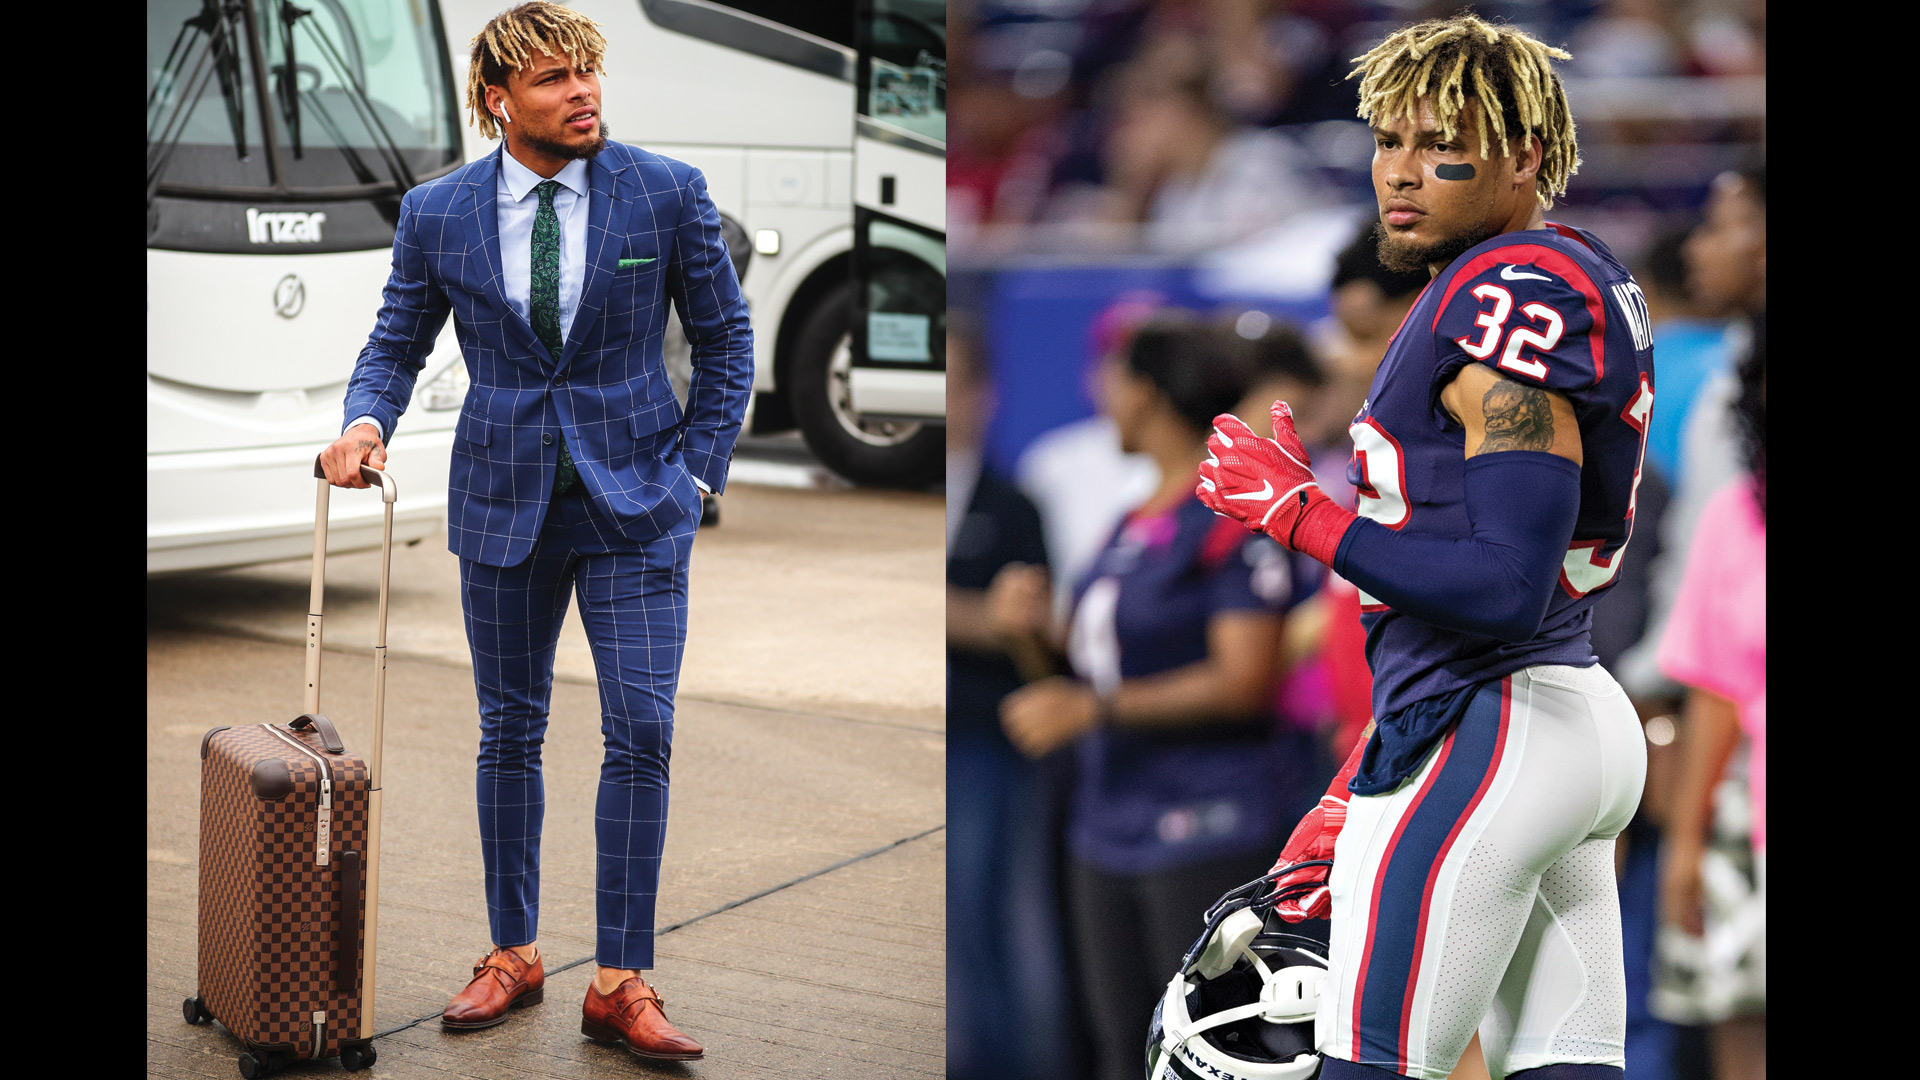 Tyrann Mathieu, Houston Texans